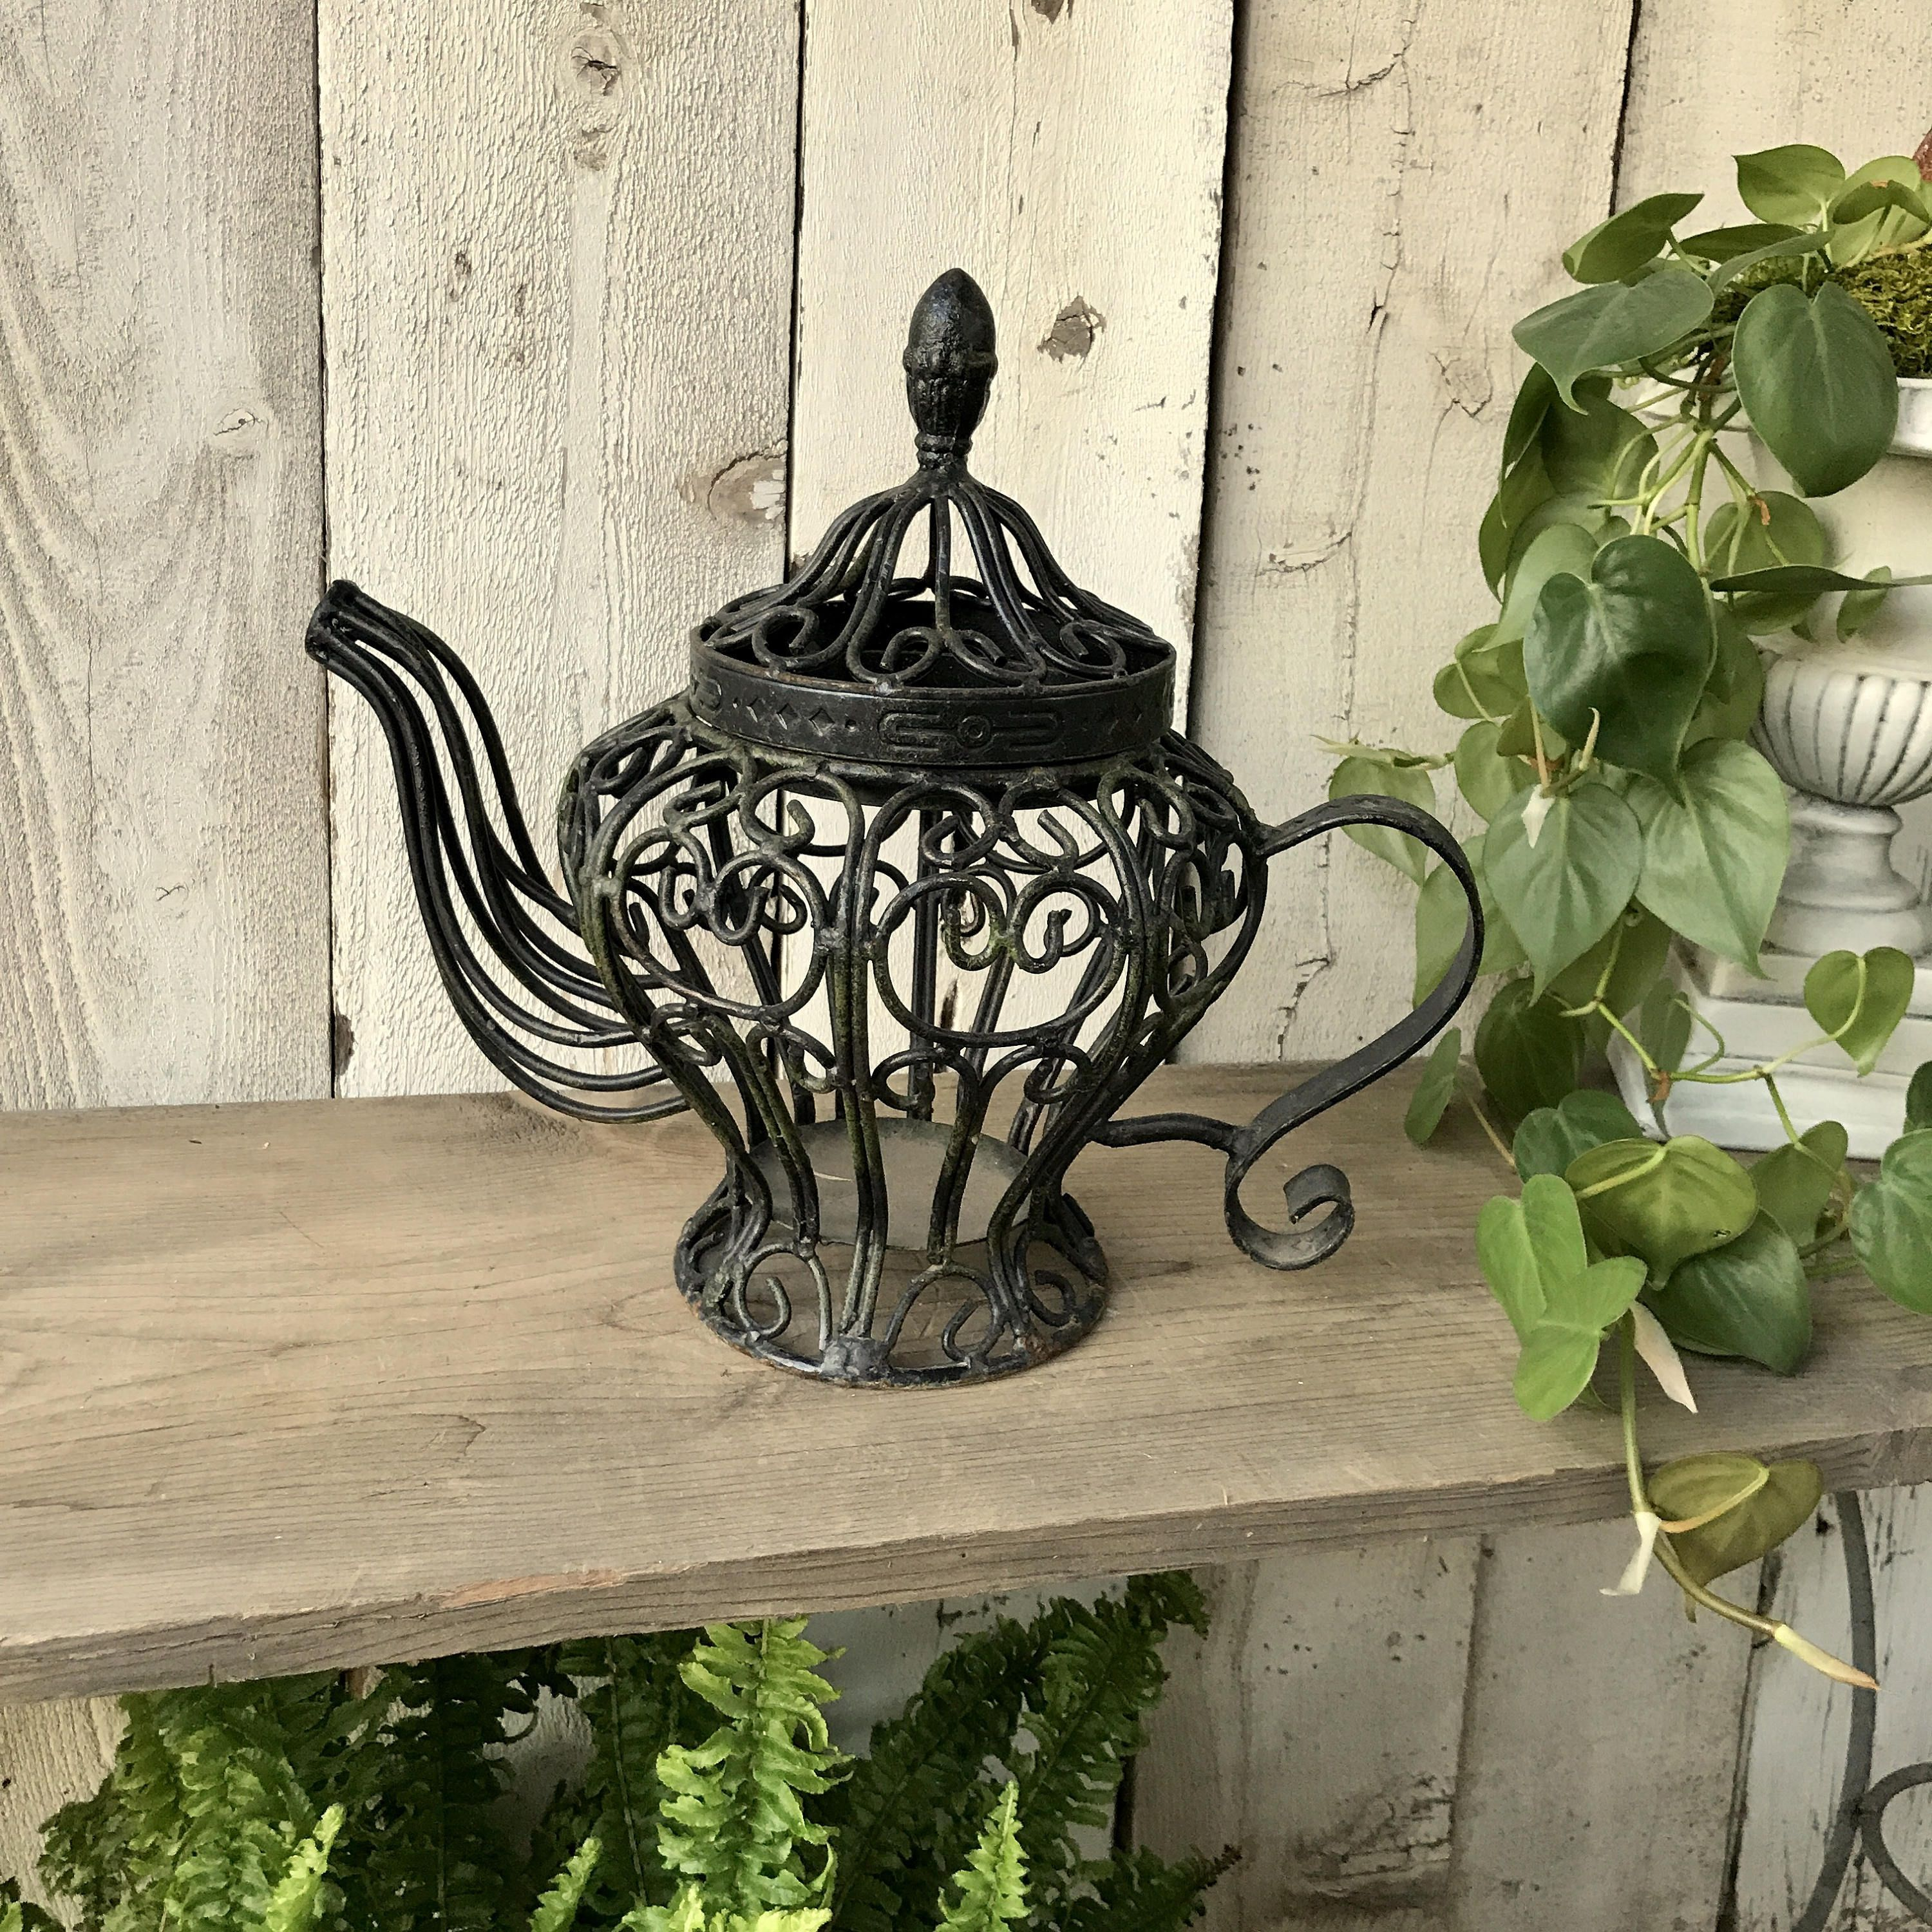 Wrought Iron Teapot Garden Decoration Rustic Scrolly Candle Holder Plant